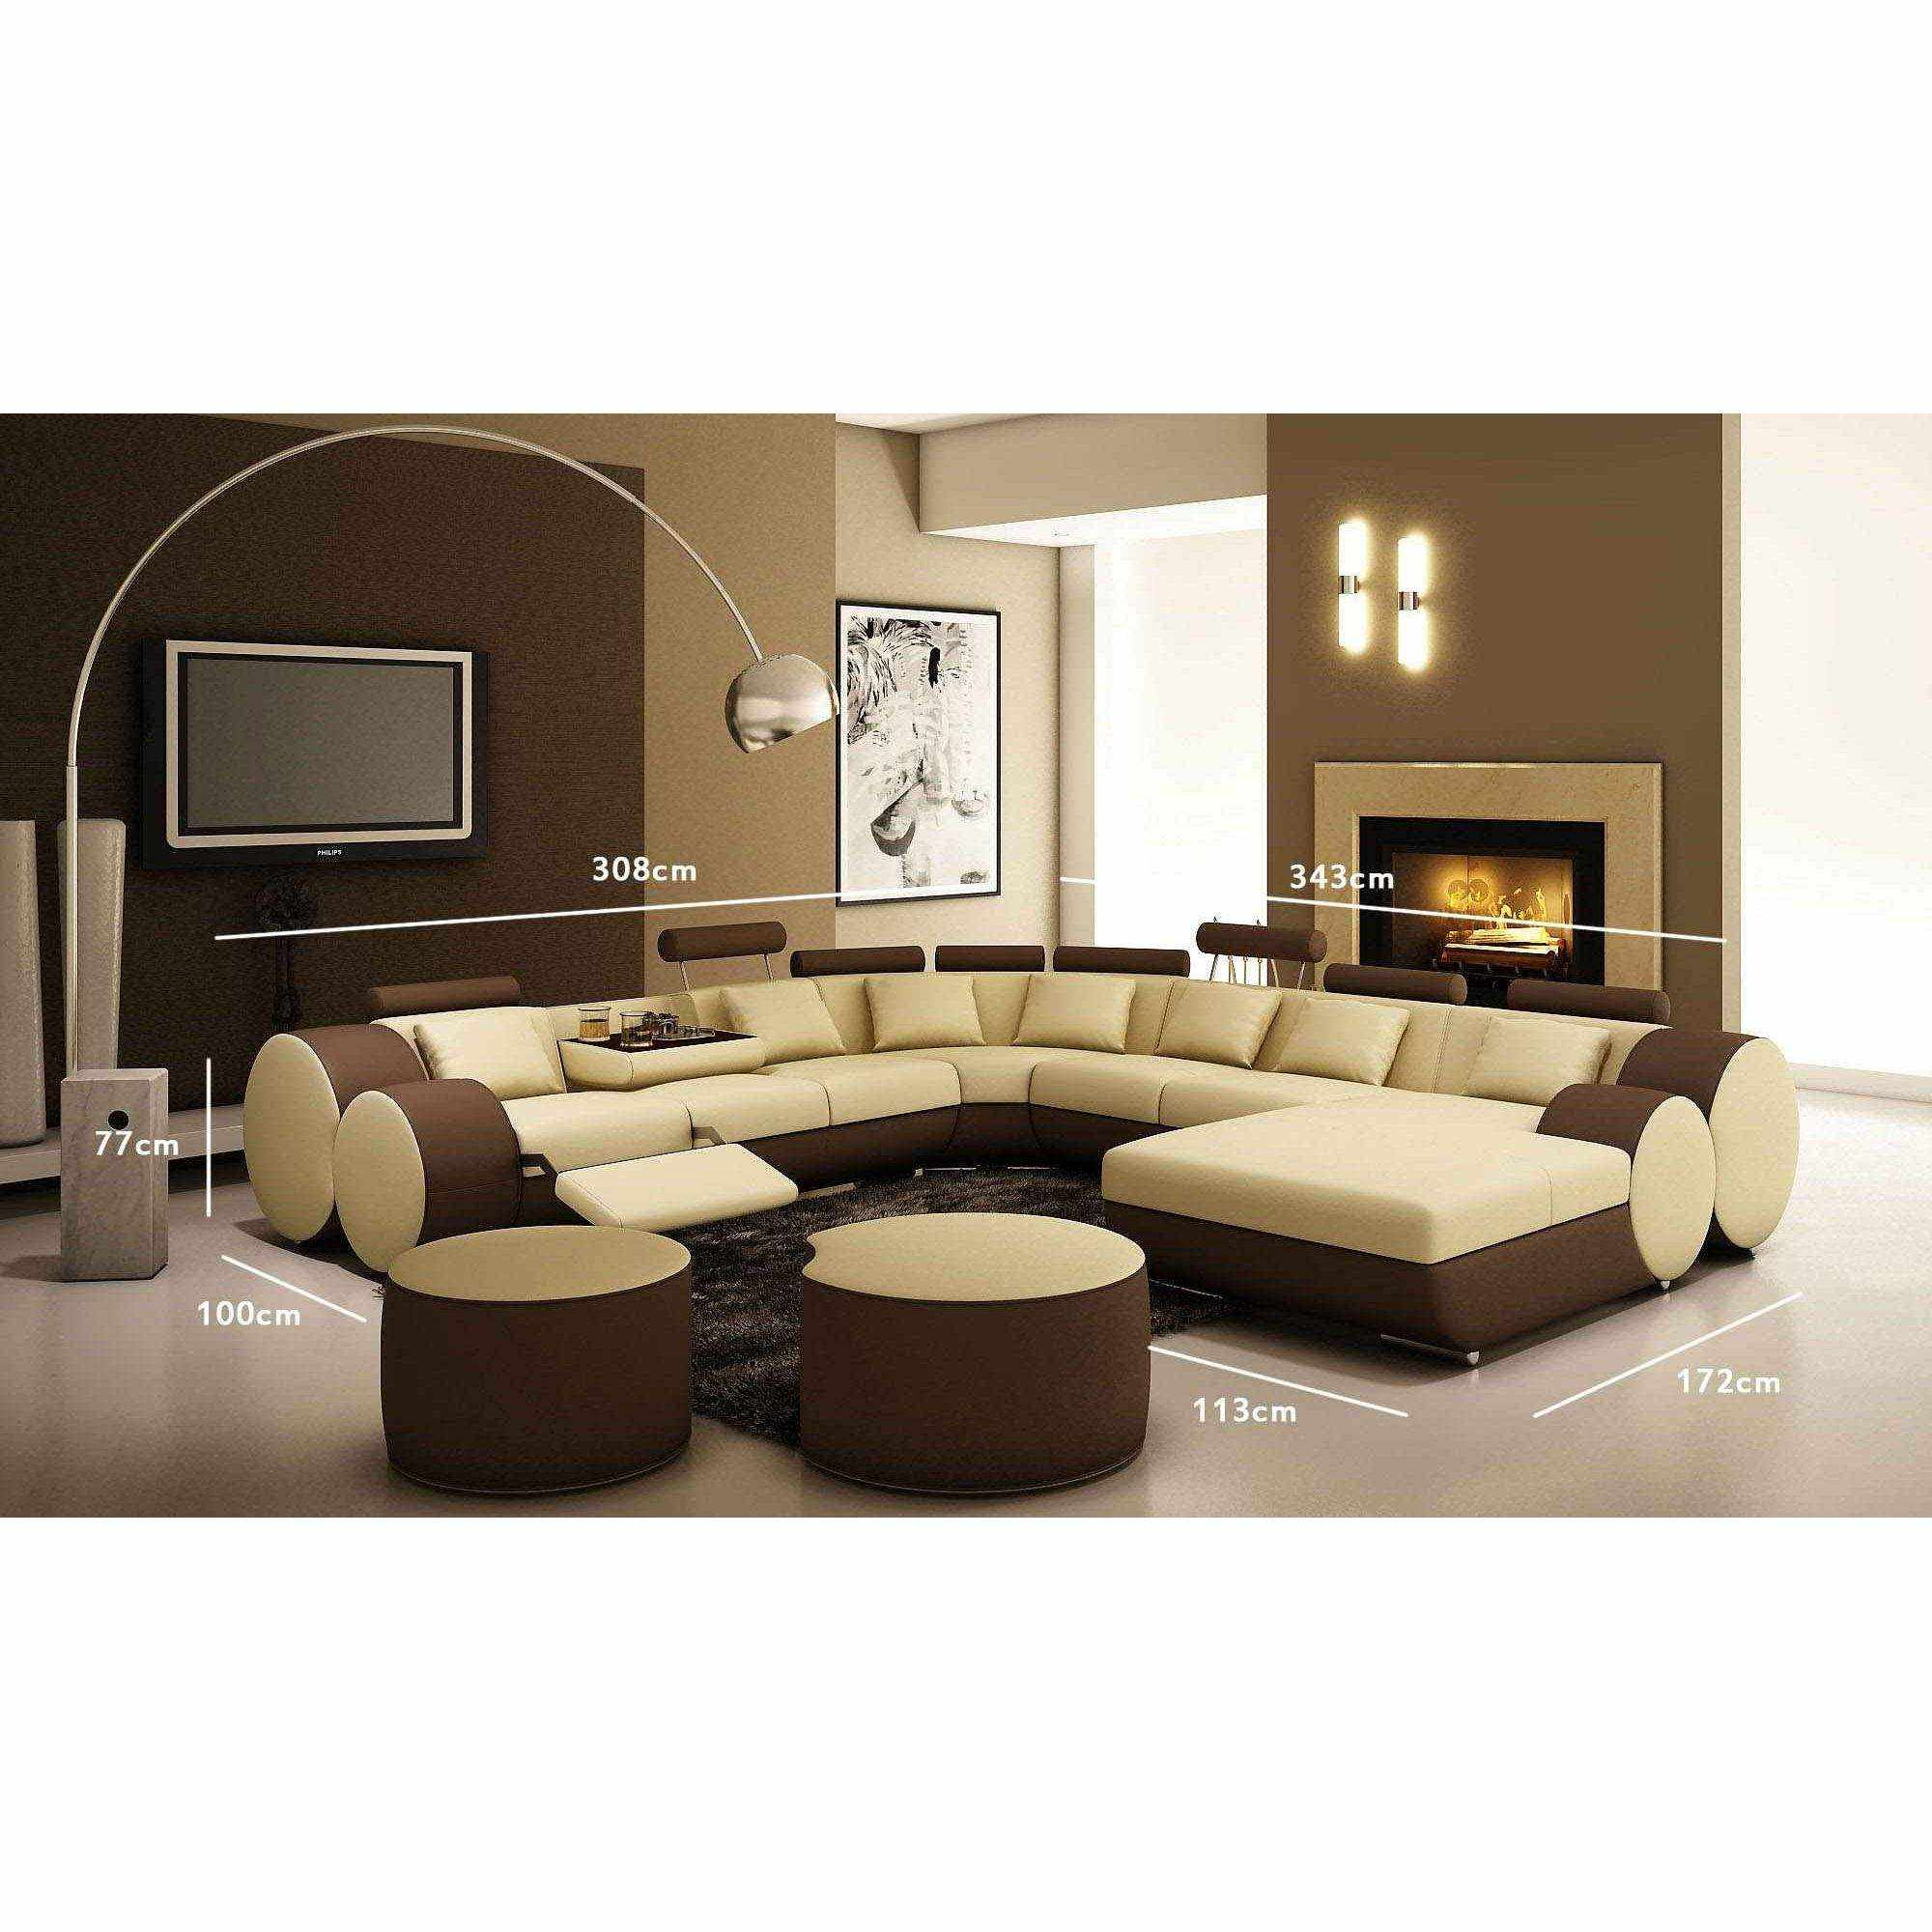 Deco in paris   canape panoramique cuir marron et beige roma can ...